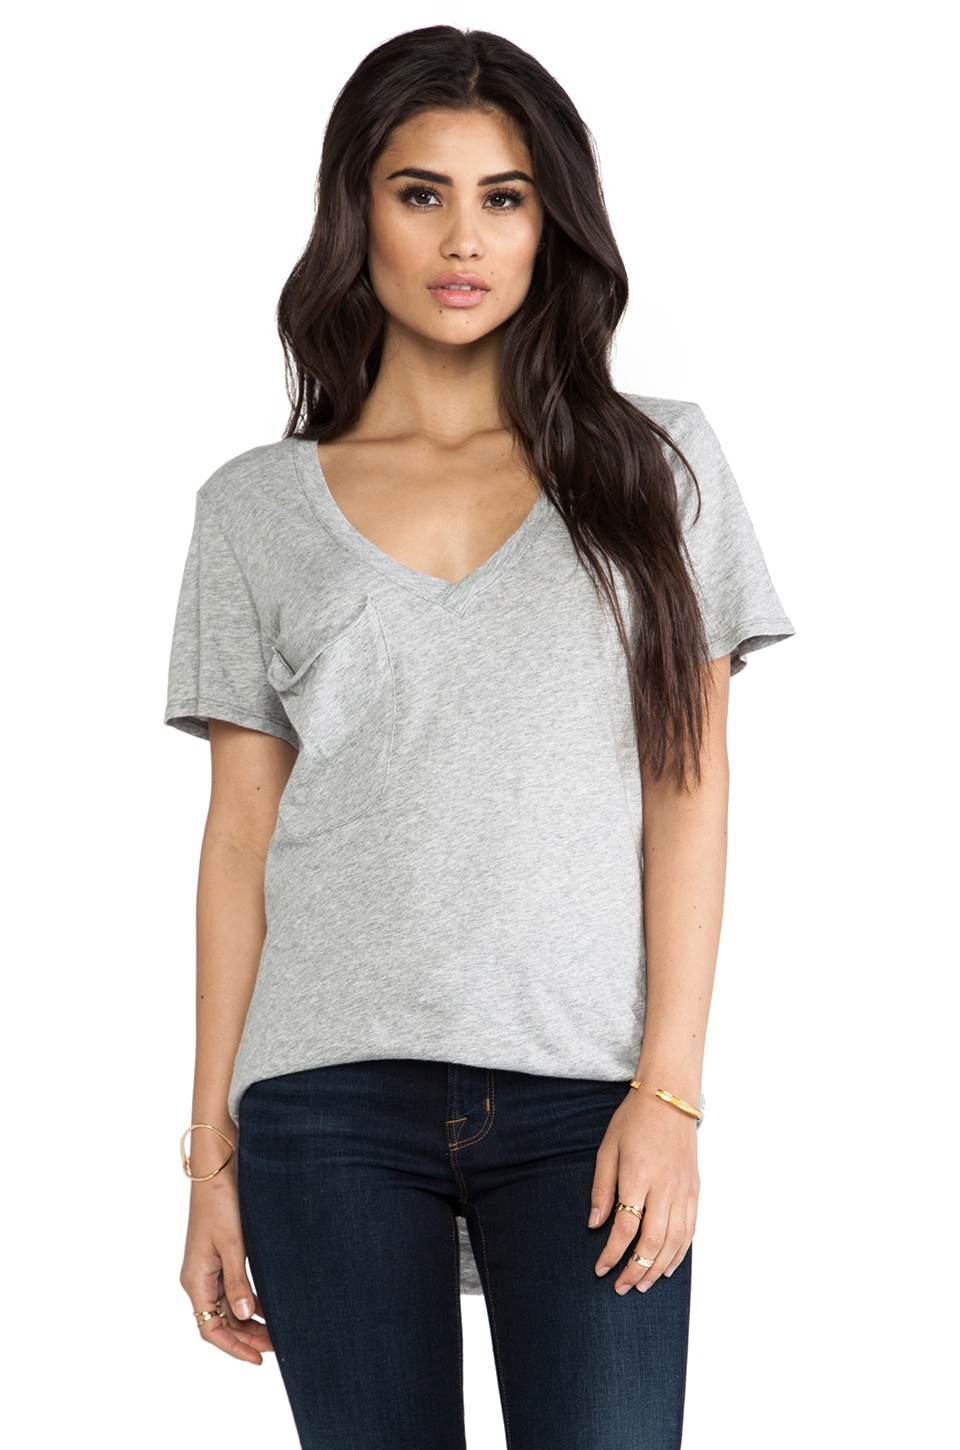 Bobi Light Weight Jersey Pocket Tee in Heather Grey